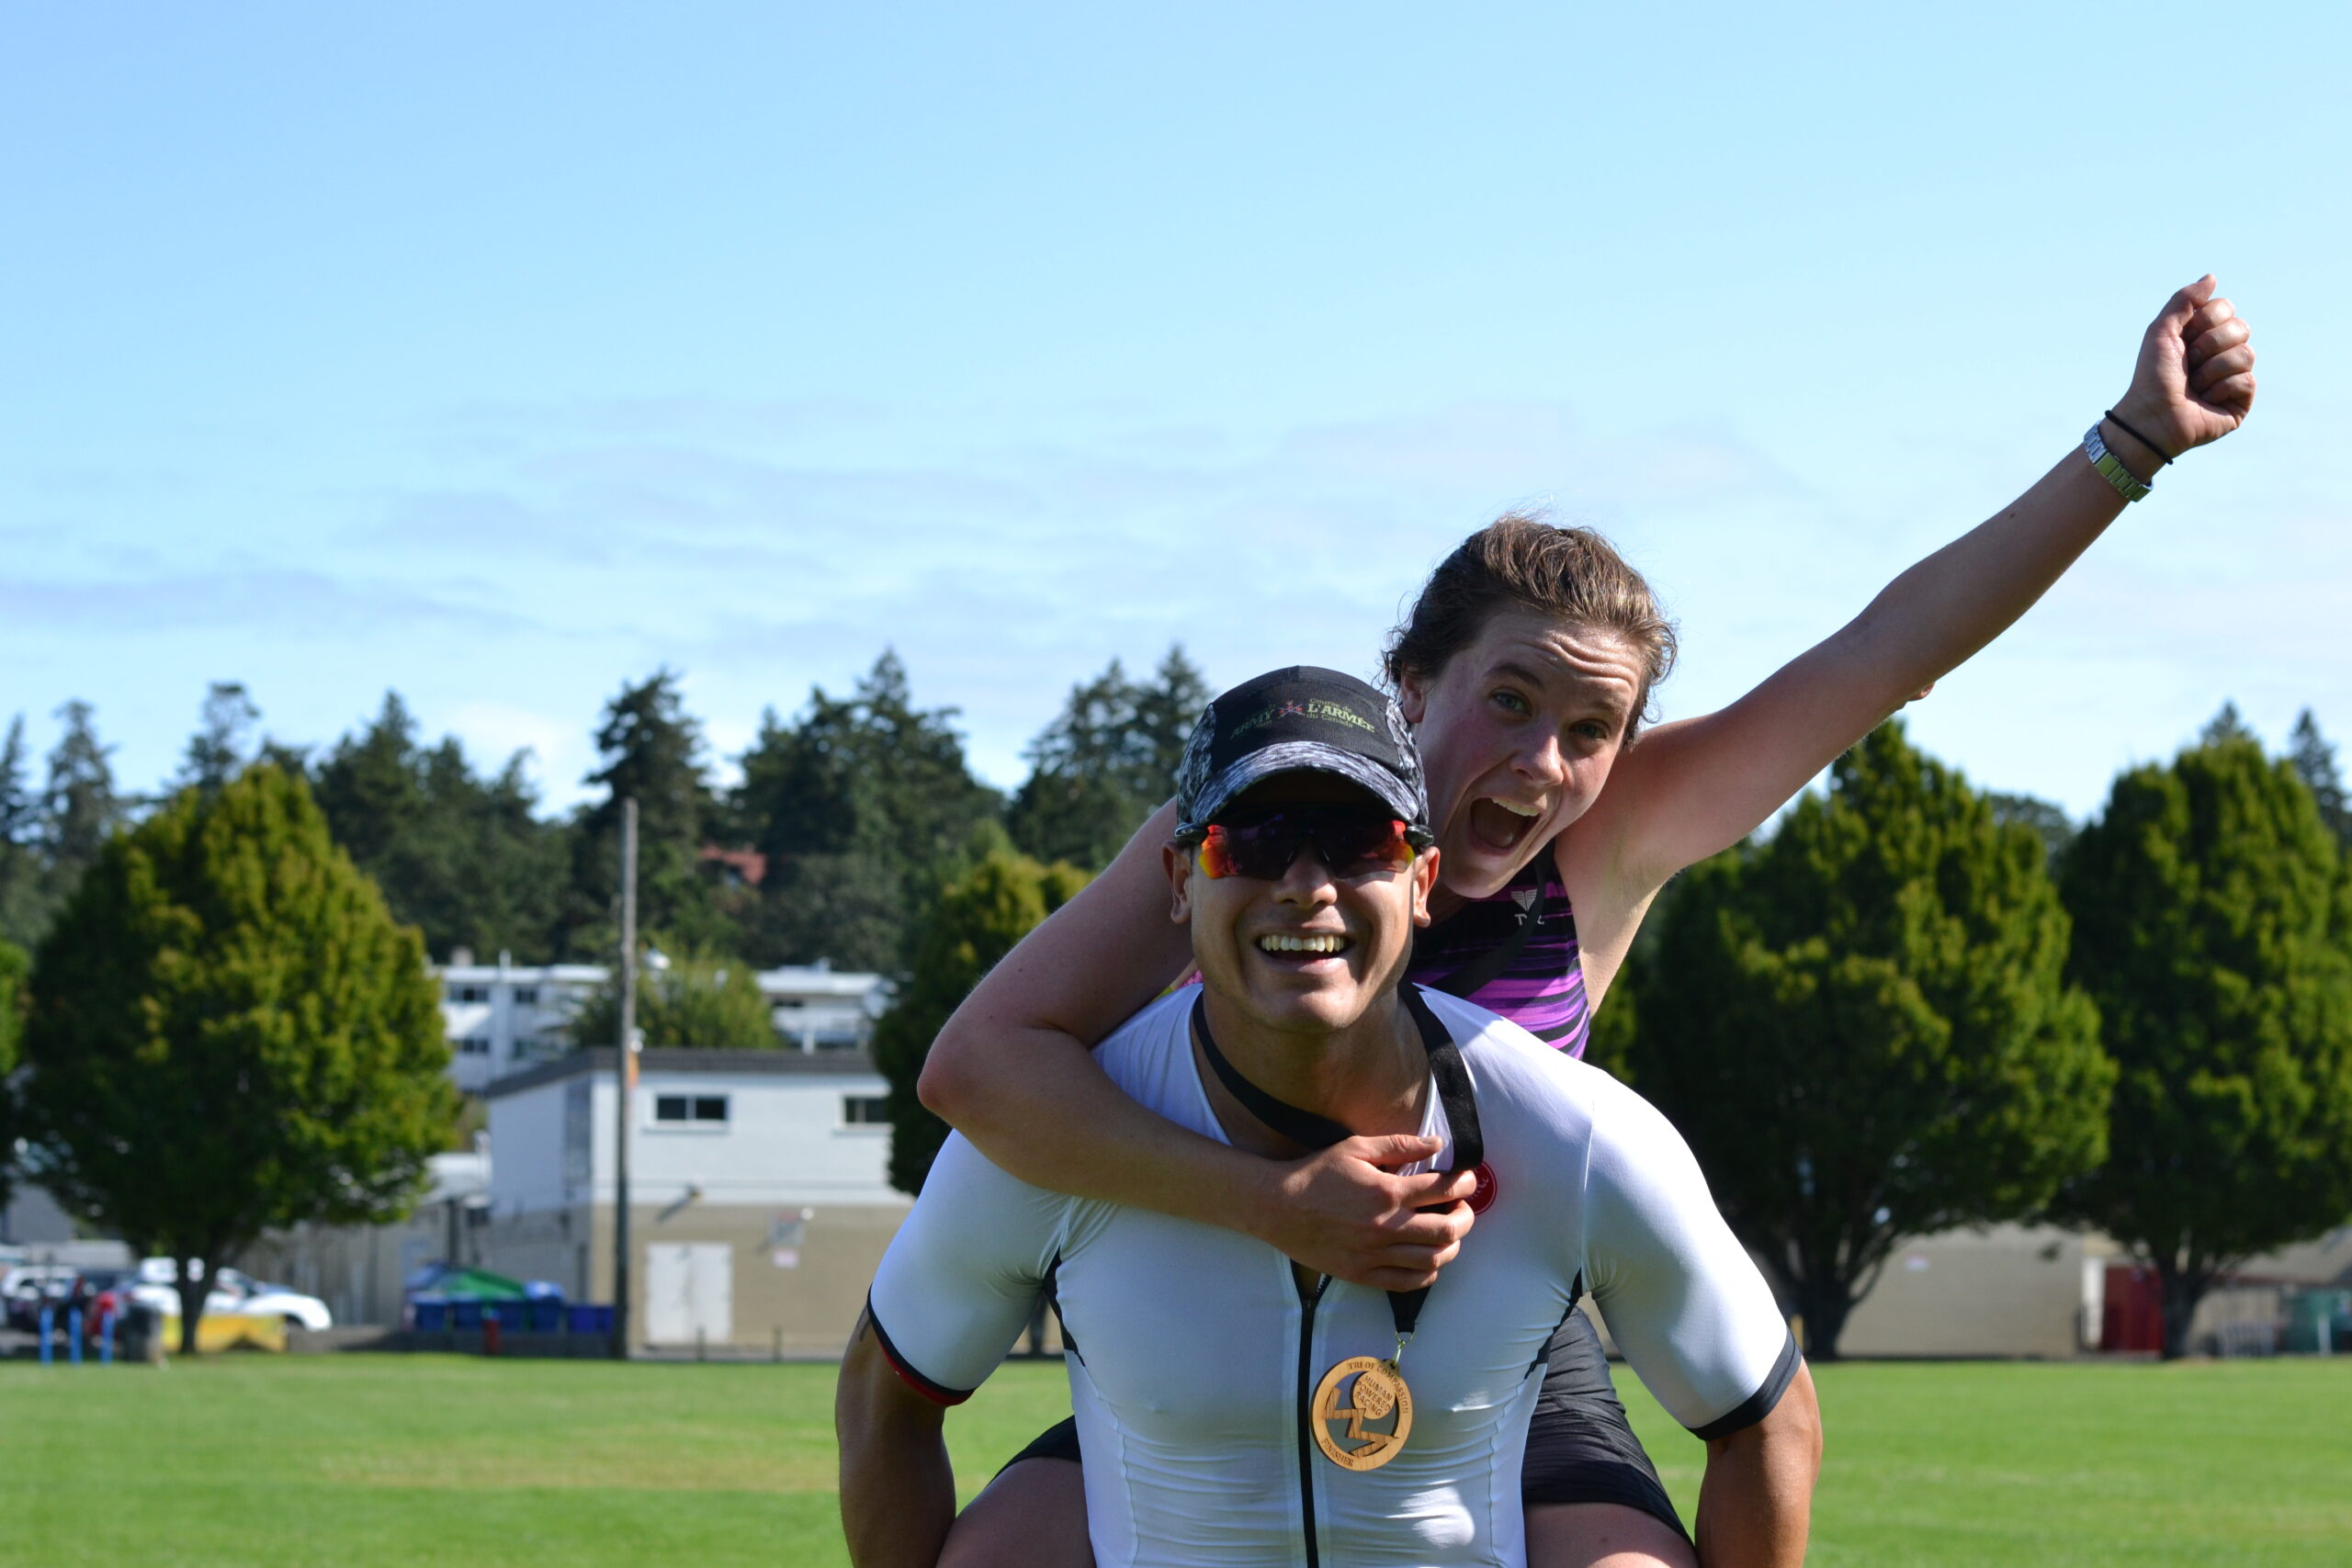 Two racers celebrate finishing an awesome race!